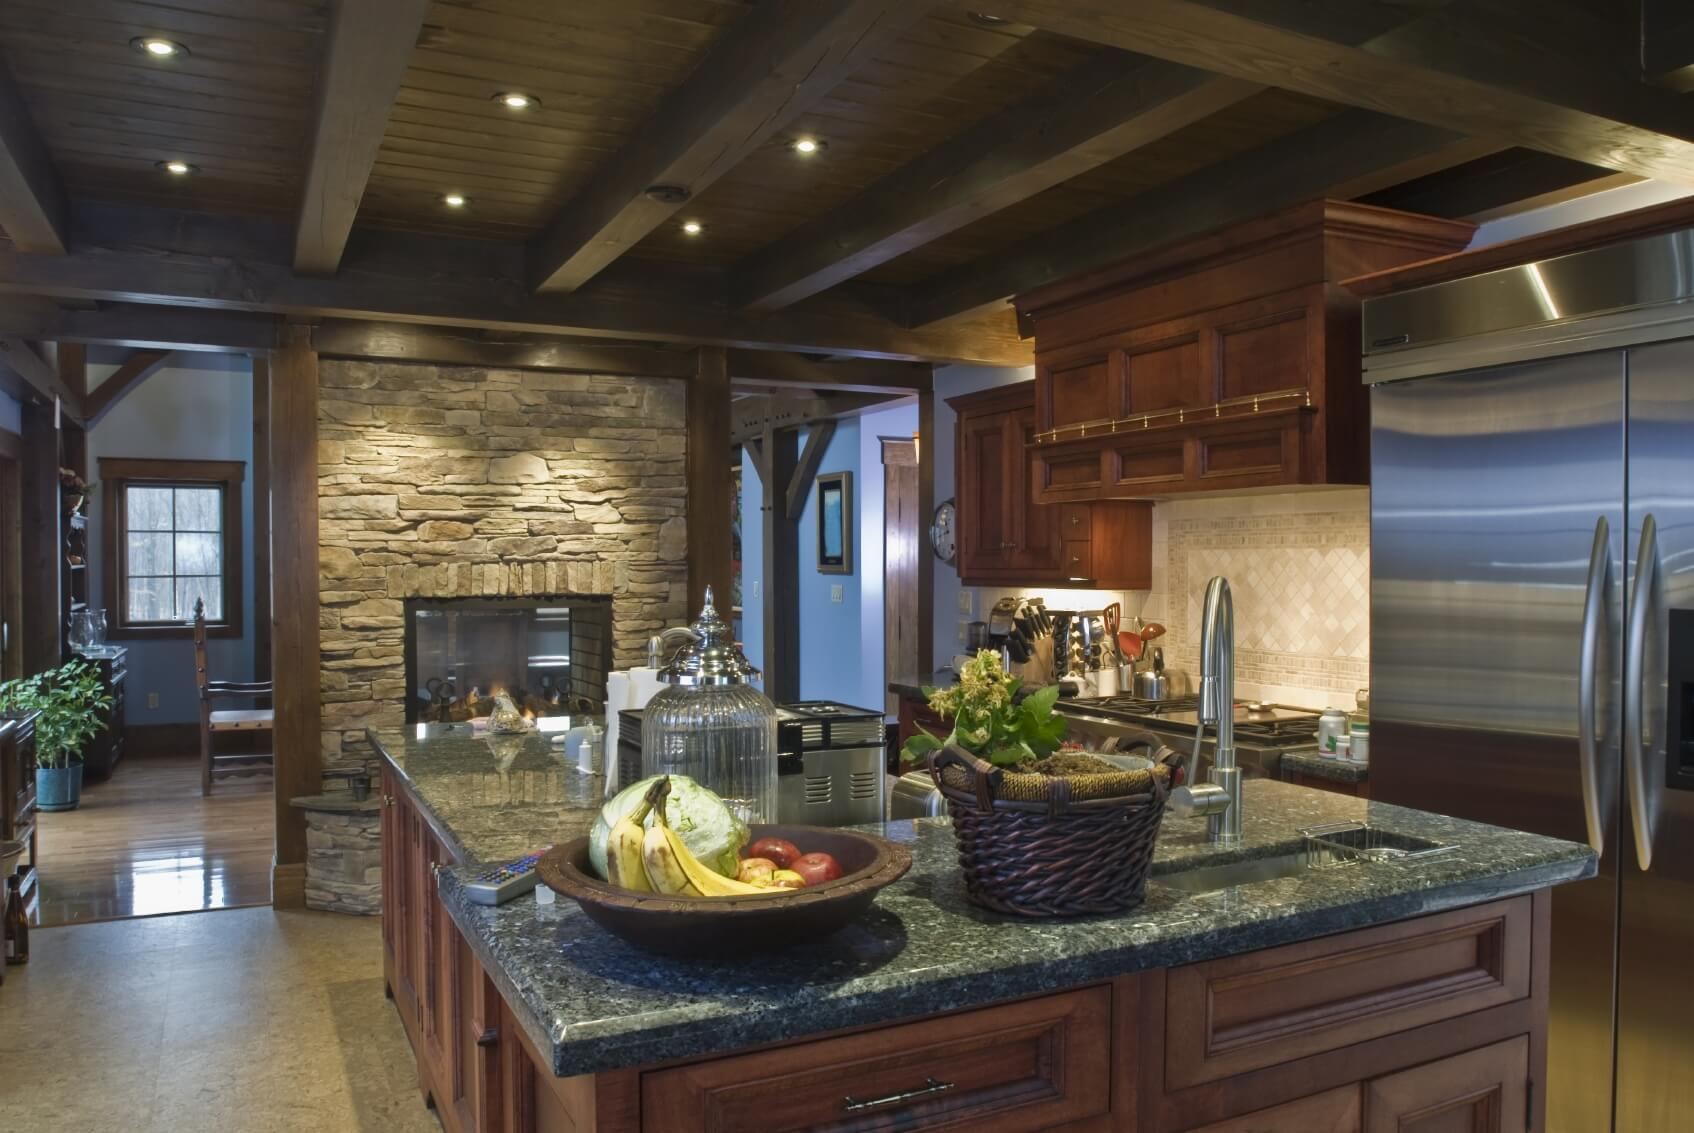 rta kitchen cabinets why you should use them in your kitchen rta kitchen cabinets RTA Kitchen Cabinets Why You should Use Them in Your Kitchen